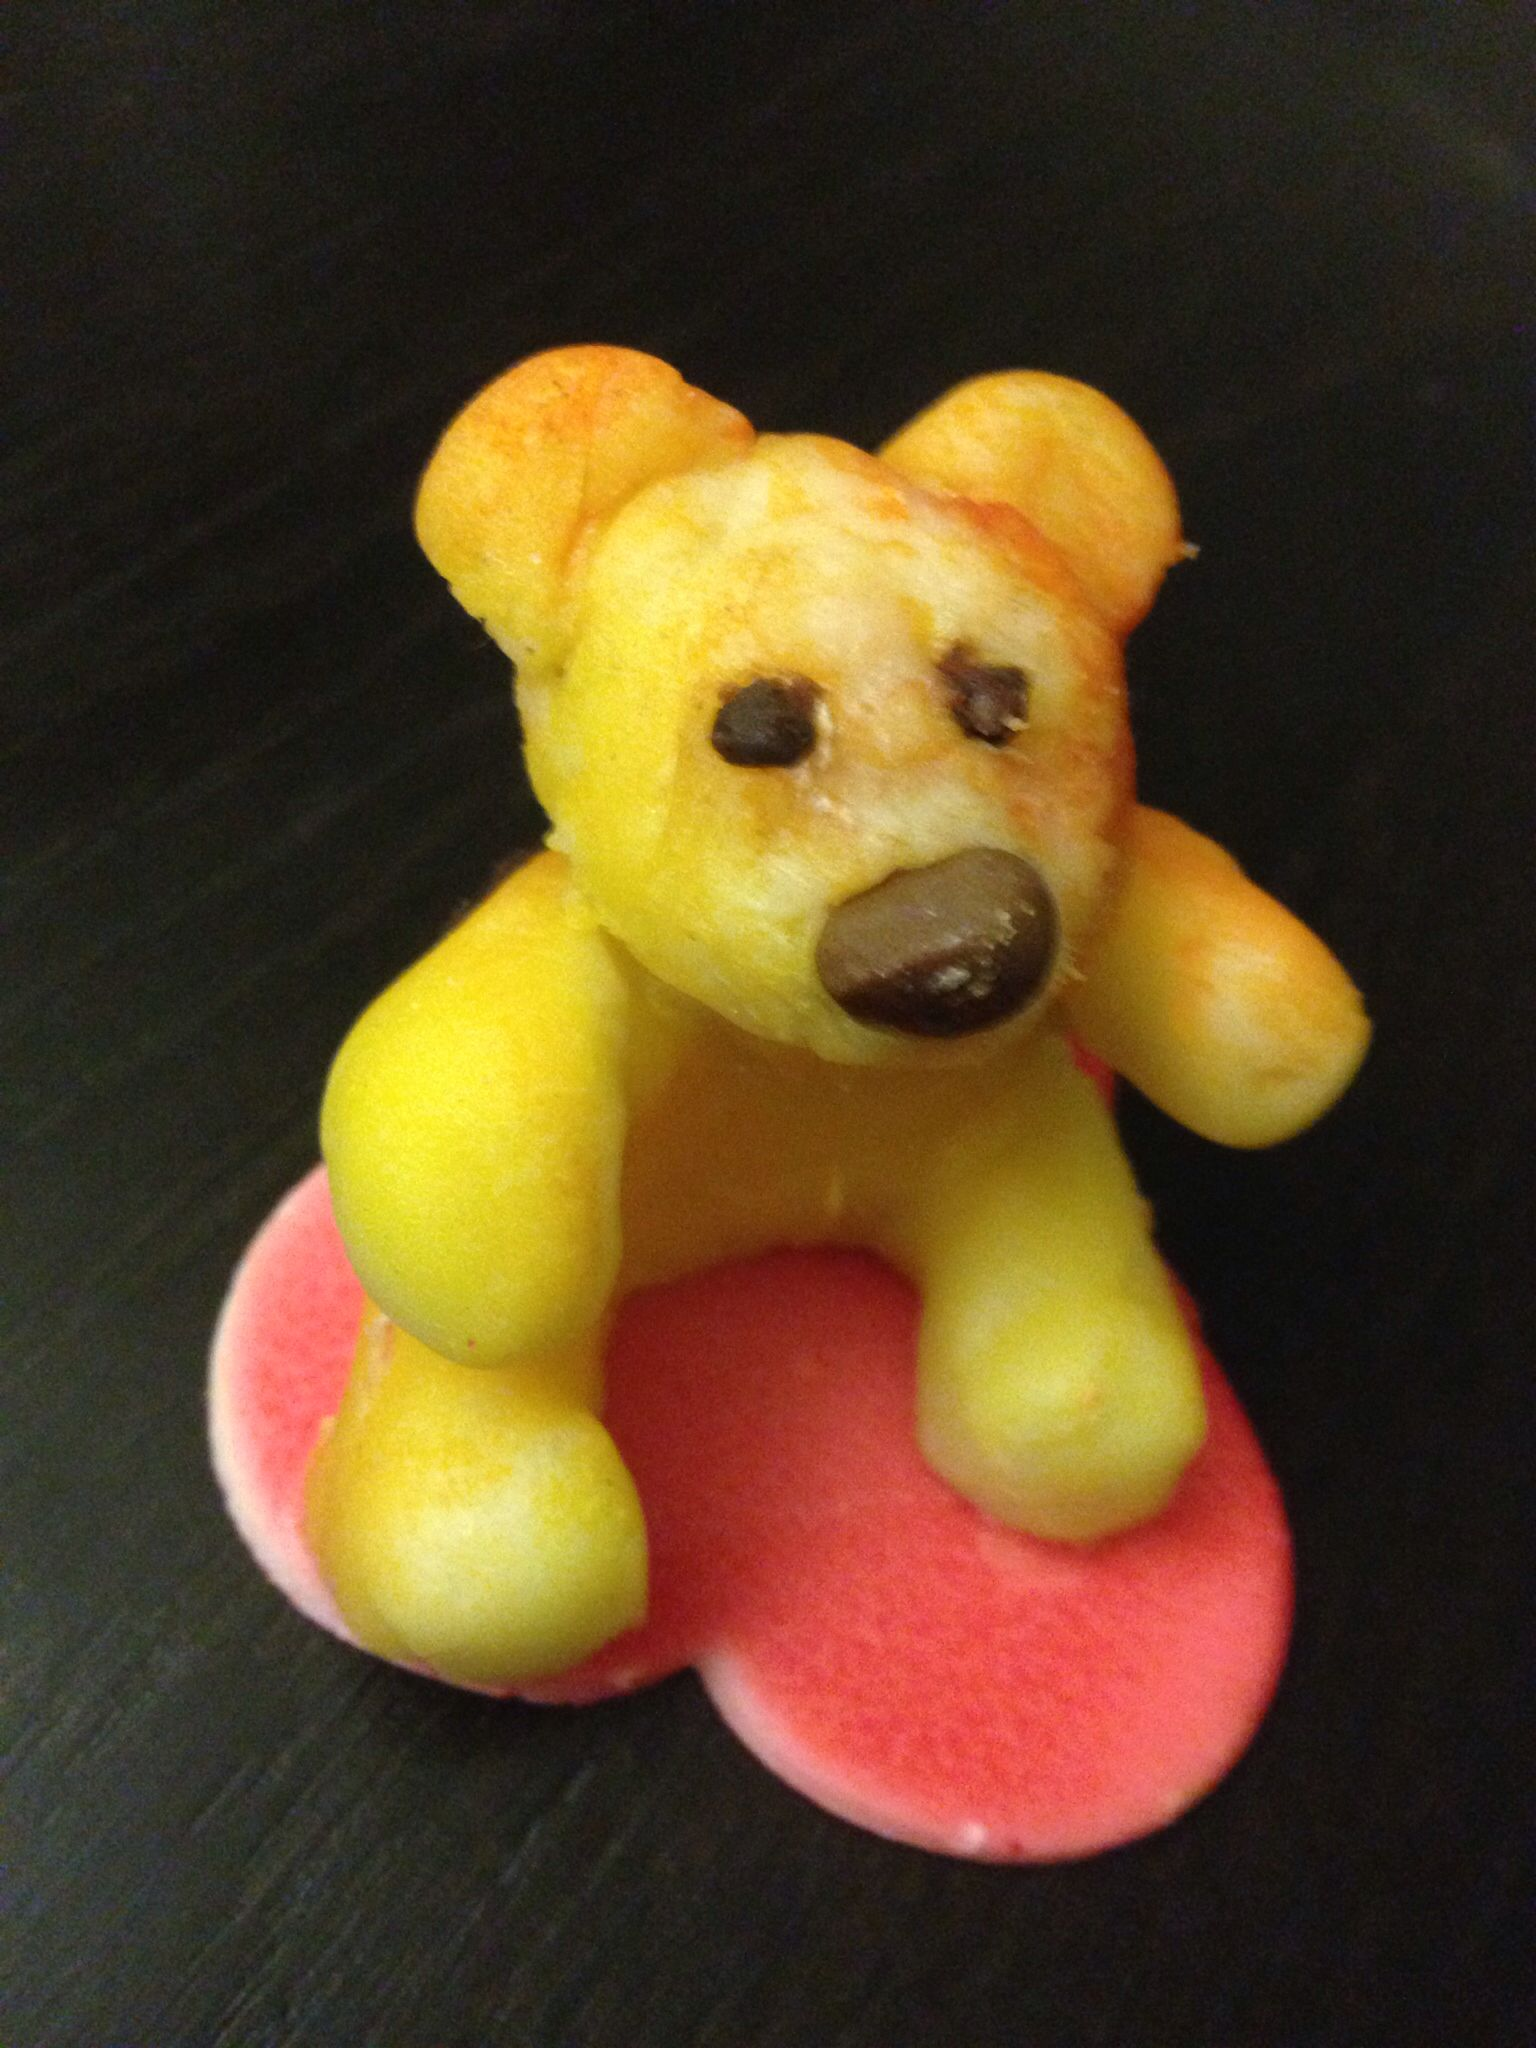 prototype of a small edible love bear I did myself ~ almond paste, chocolate kisse and a bit safran color in an airbrush were used